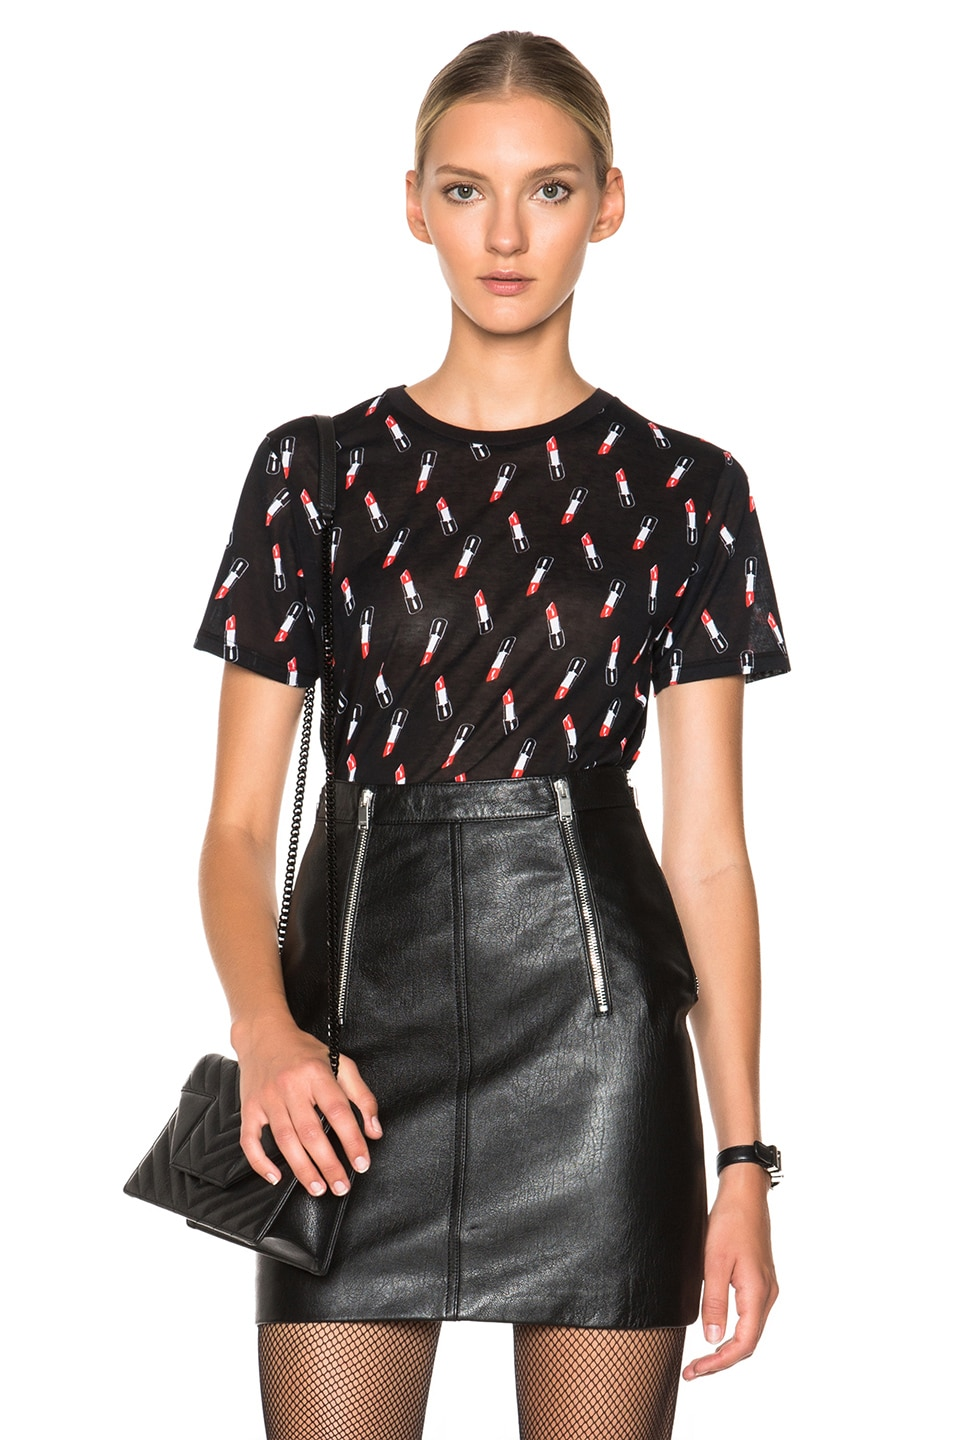 Image 1 of Saint Laurent Lipstick Print Tee in Black, Red & White